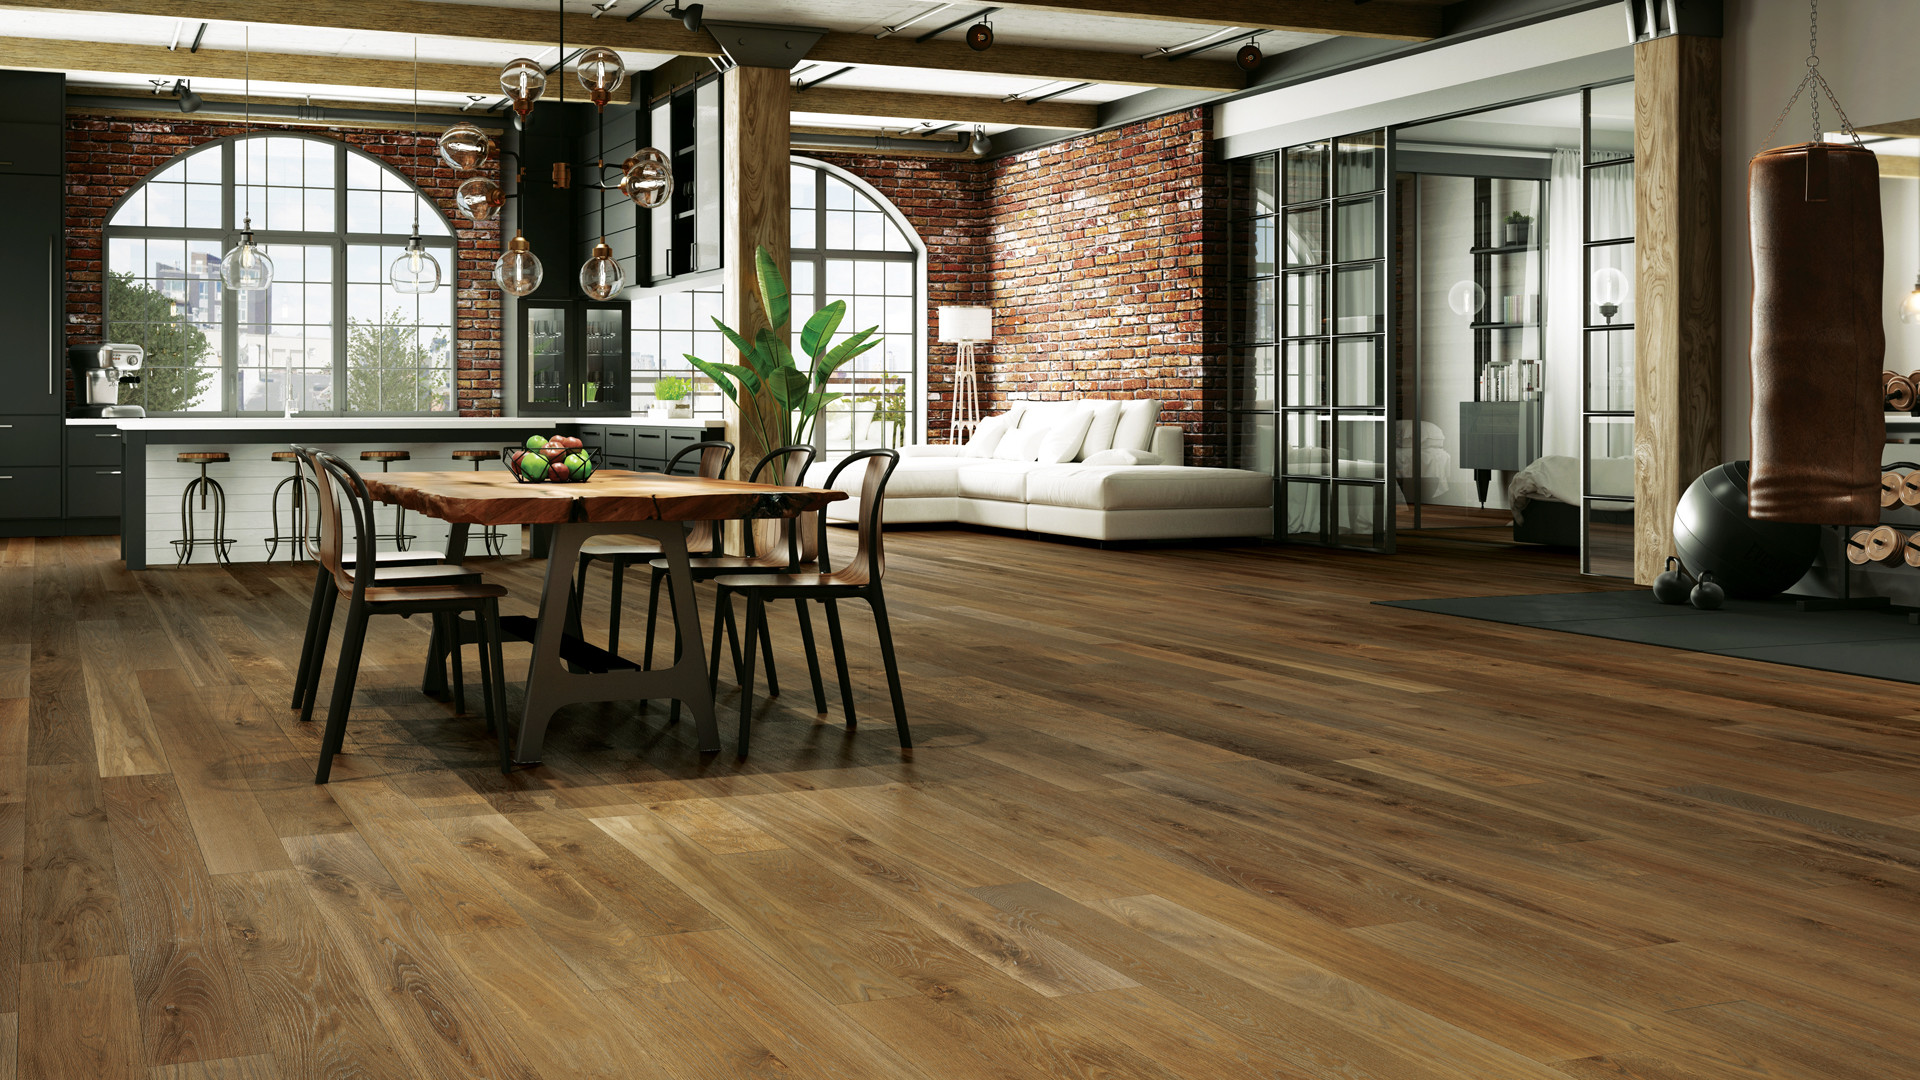 23 Fantastic Best Canadian Hardwood Flooring Manufacturers 2021 free download best canadian hardwood flooring manufacturers of 4 latest hardwood flooring trends of 2018 lauzon flooring inside combined with a wire brushed texture and an ultra matte sheen these new 7ac2